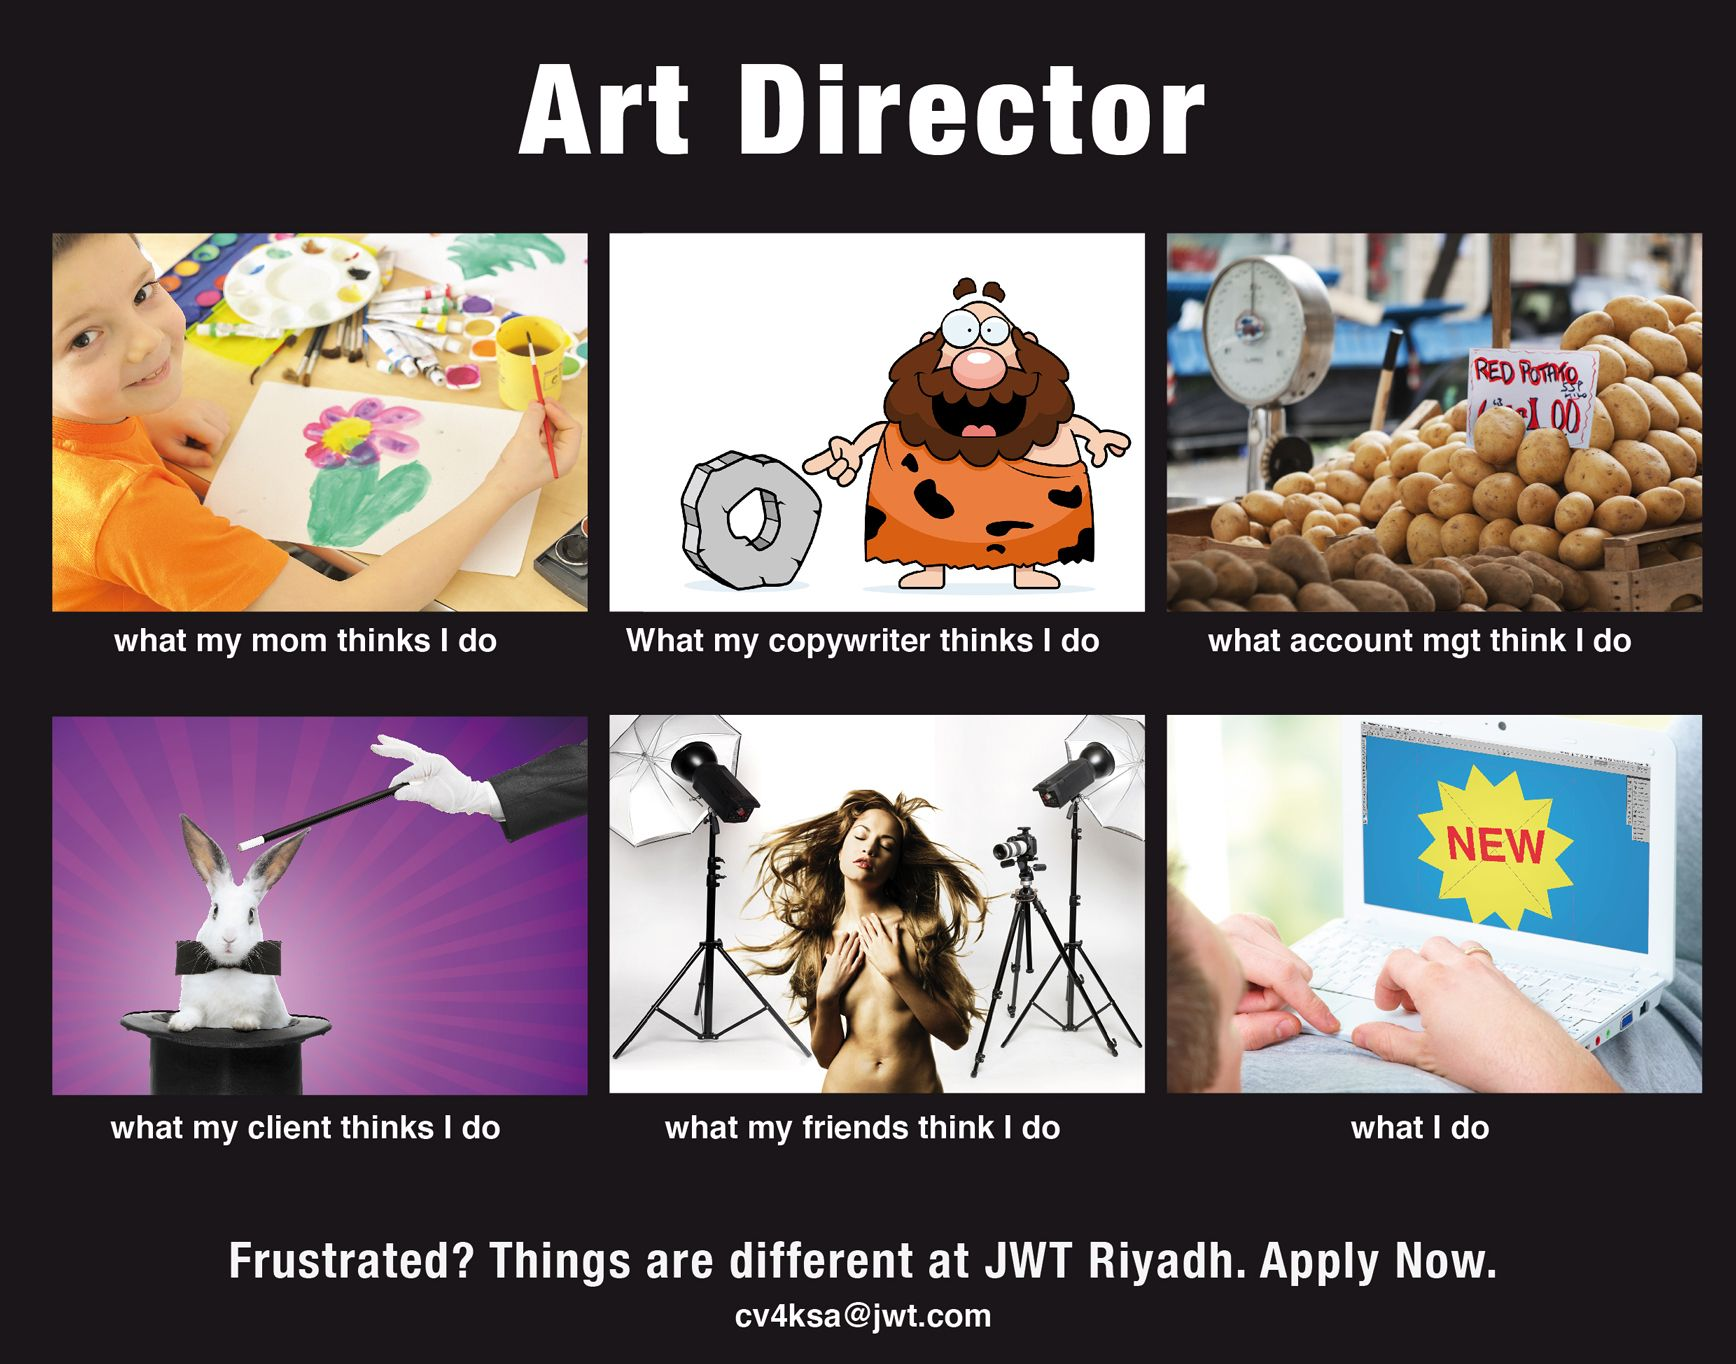 Jwt Riyadh Recruitment Ad For An Art Director  Digital  Viral